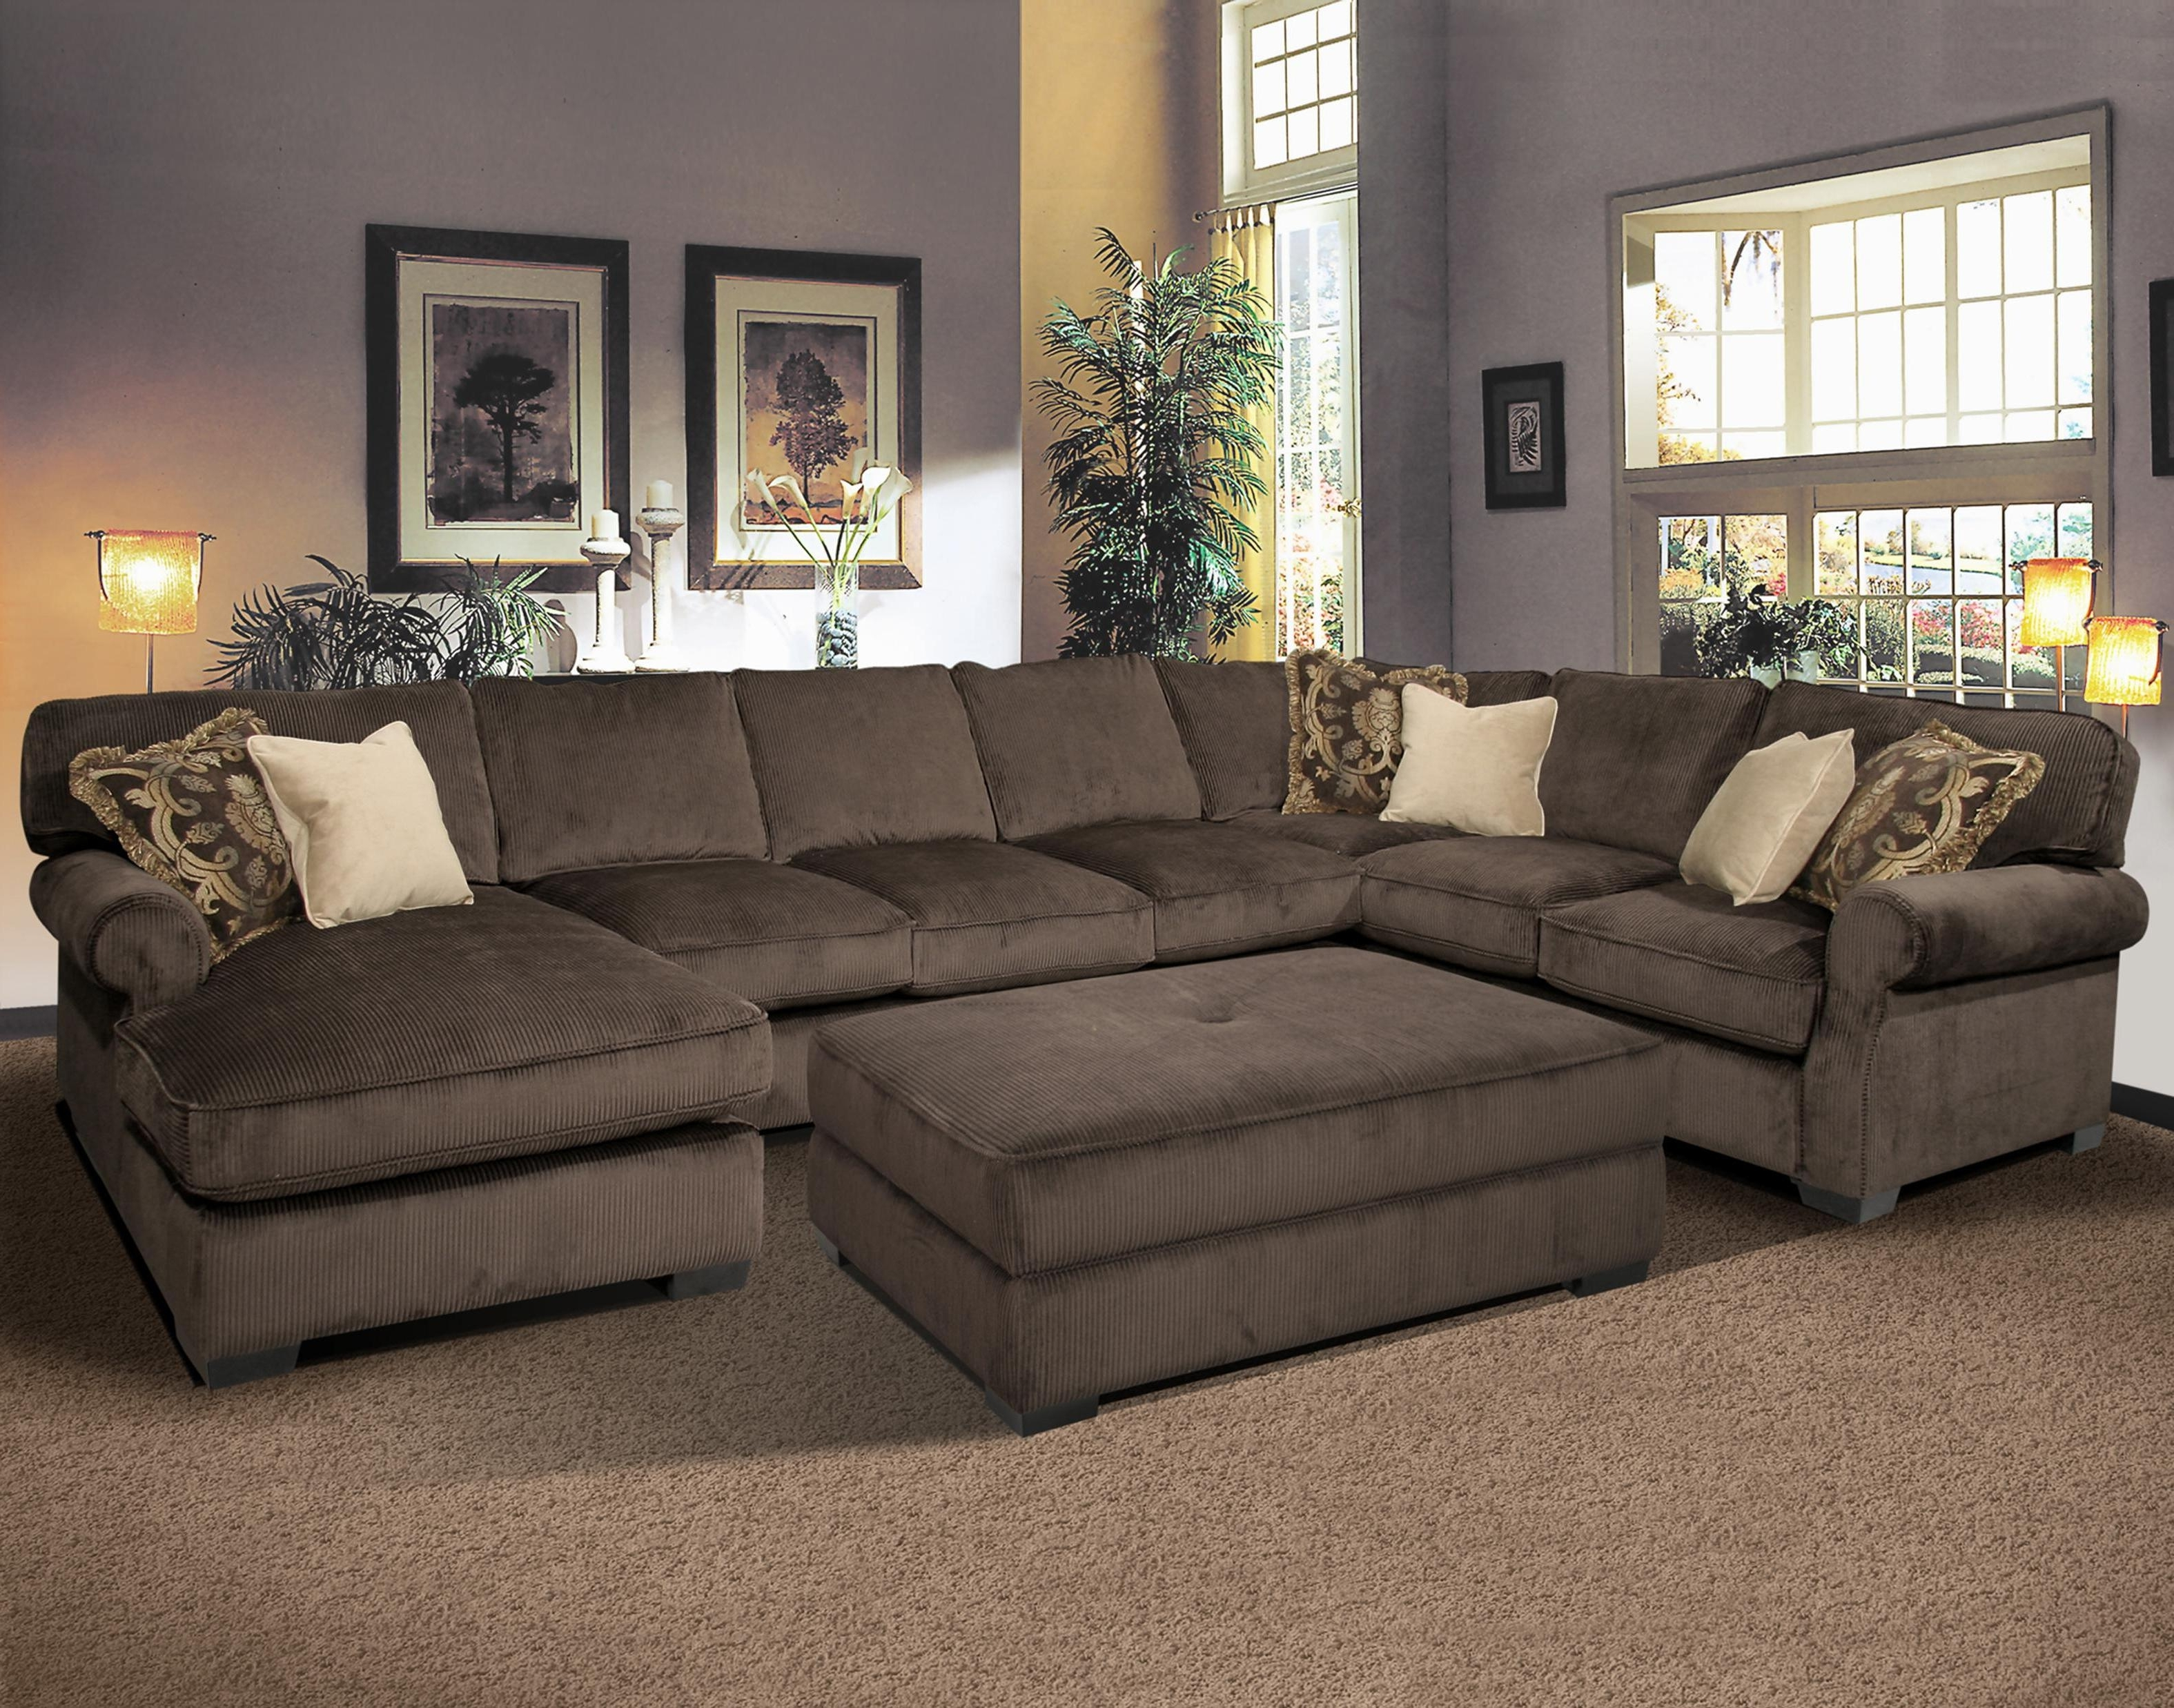 Sectional Sofas With Ottoman Pertaining To Current Furniture : Sectional Sofa With Recliner And Ottoman Grand Island (View 7 of 20)